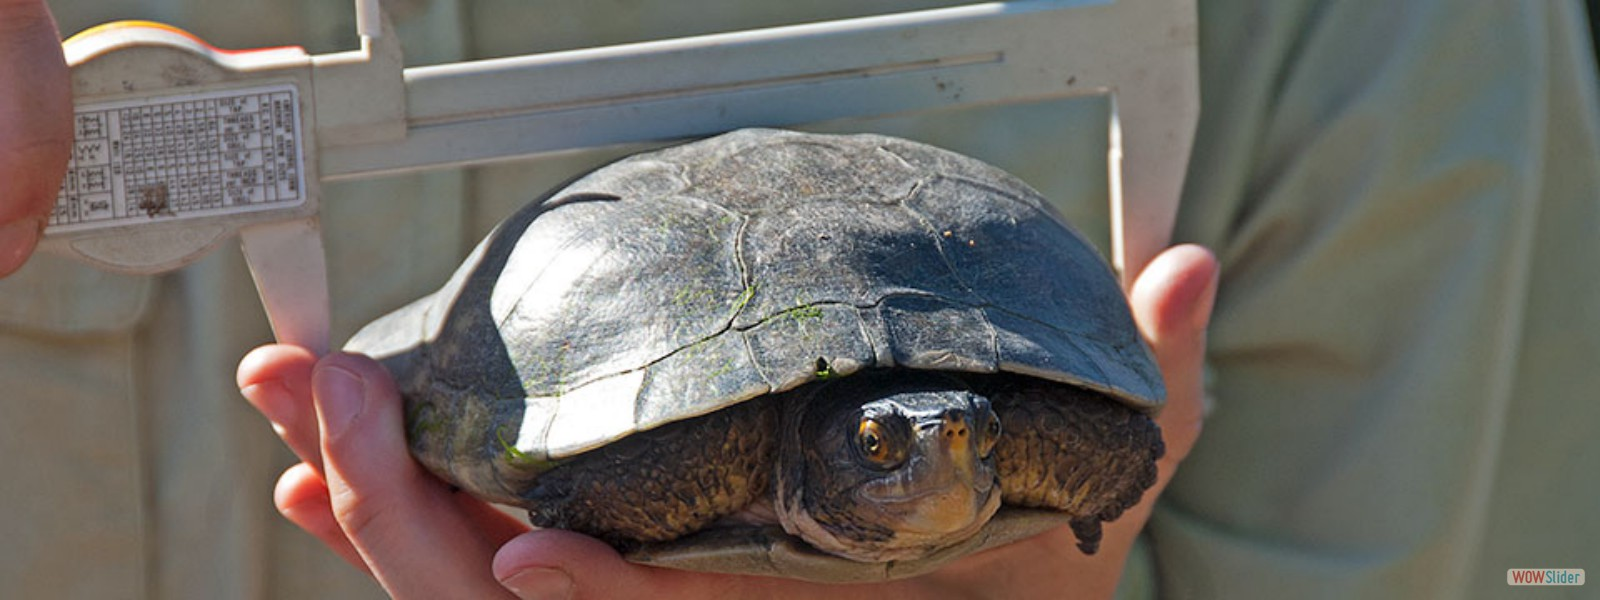 USGS Scientist Kathy Baumberger measures the carapace of a Western Pond Turtle